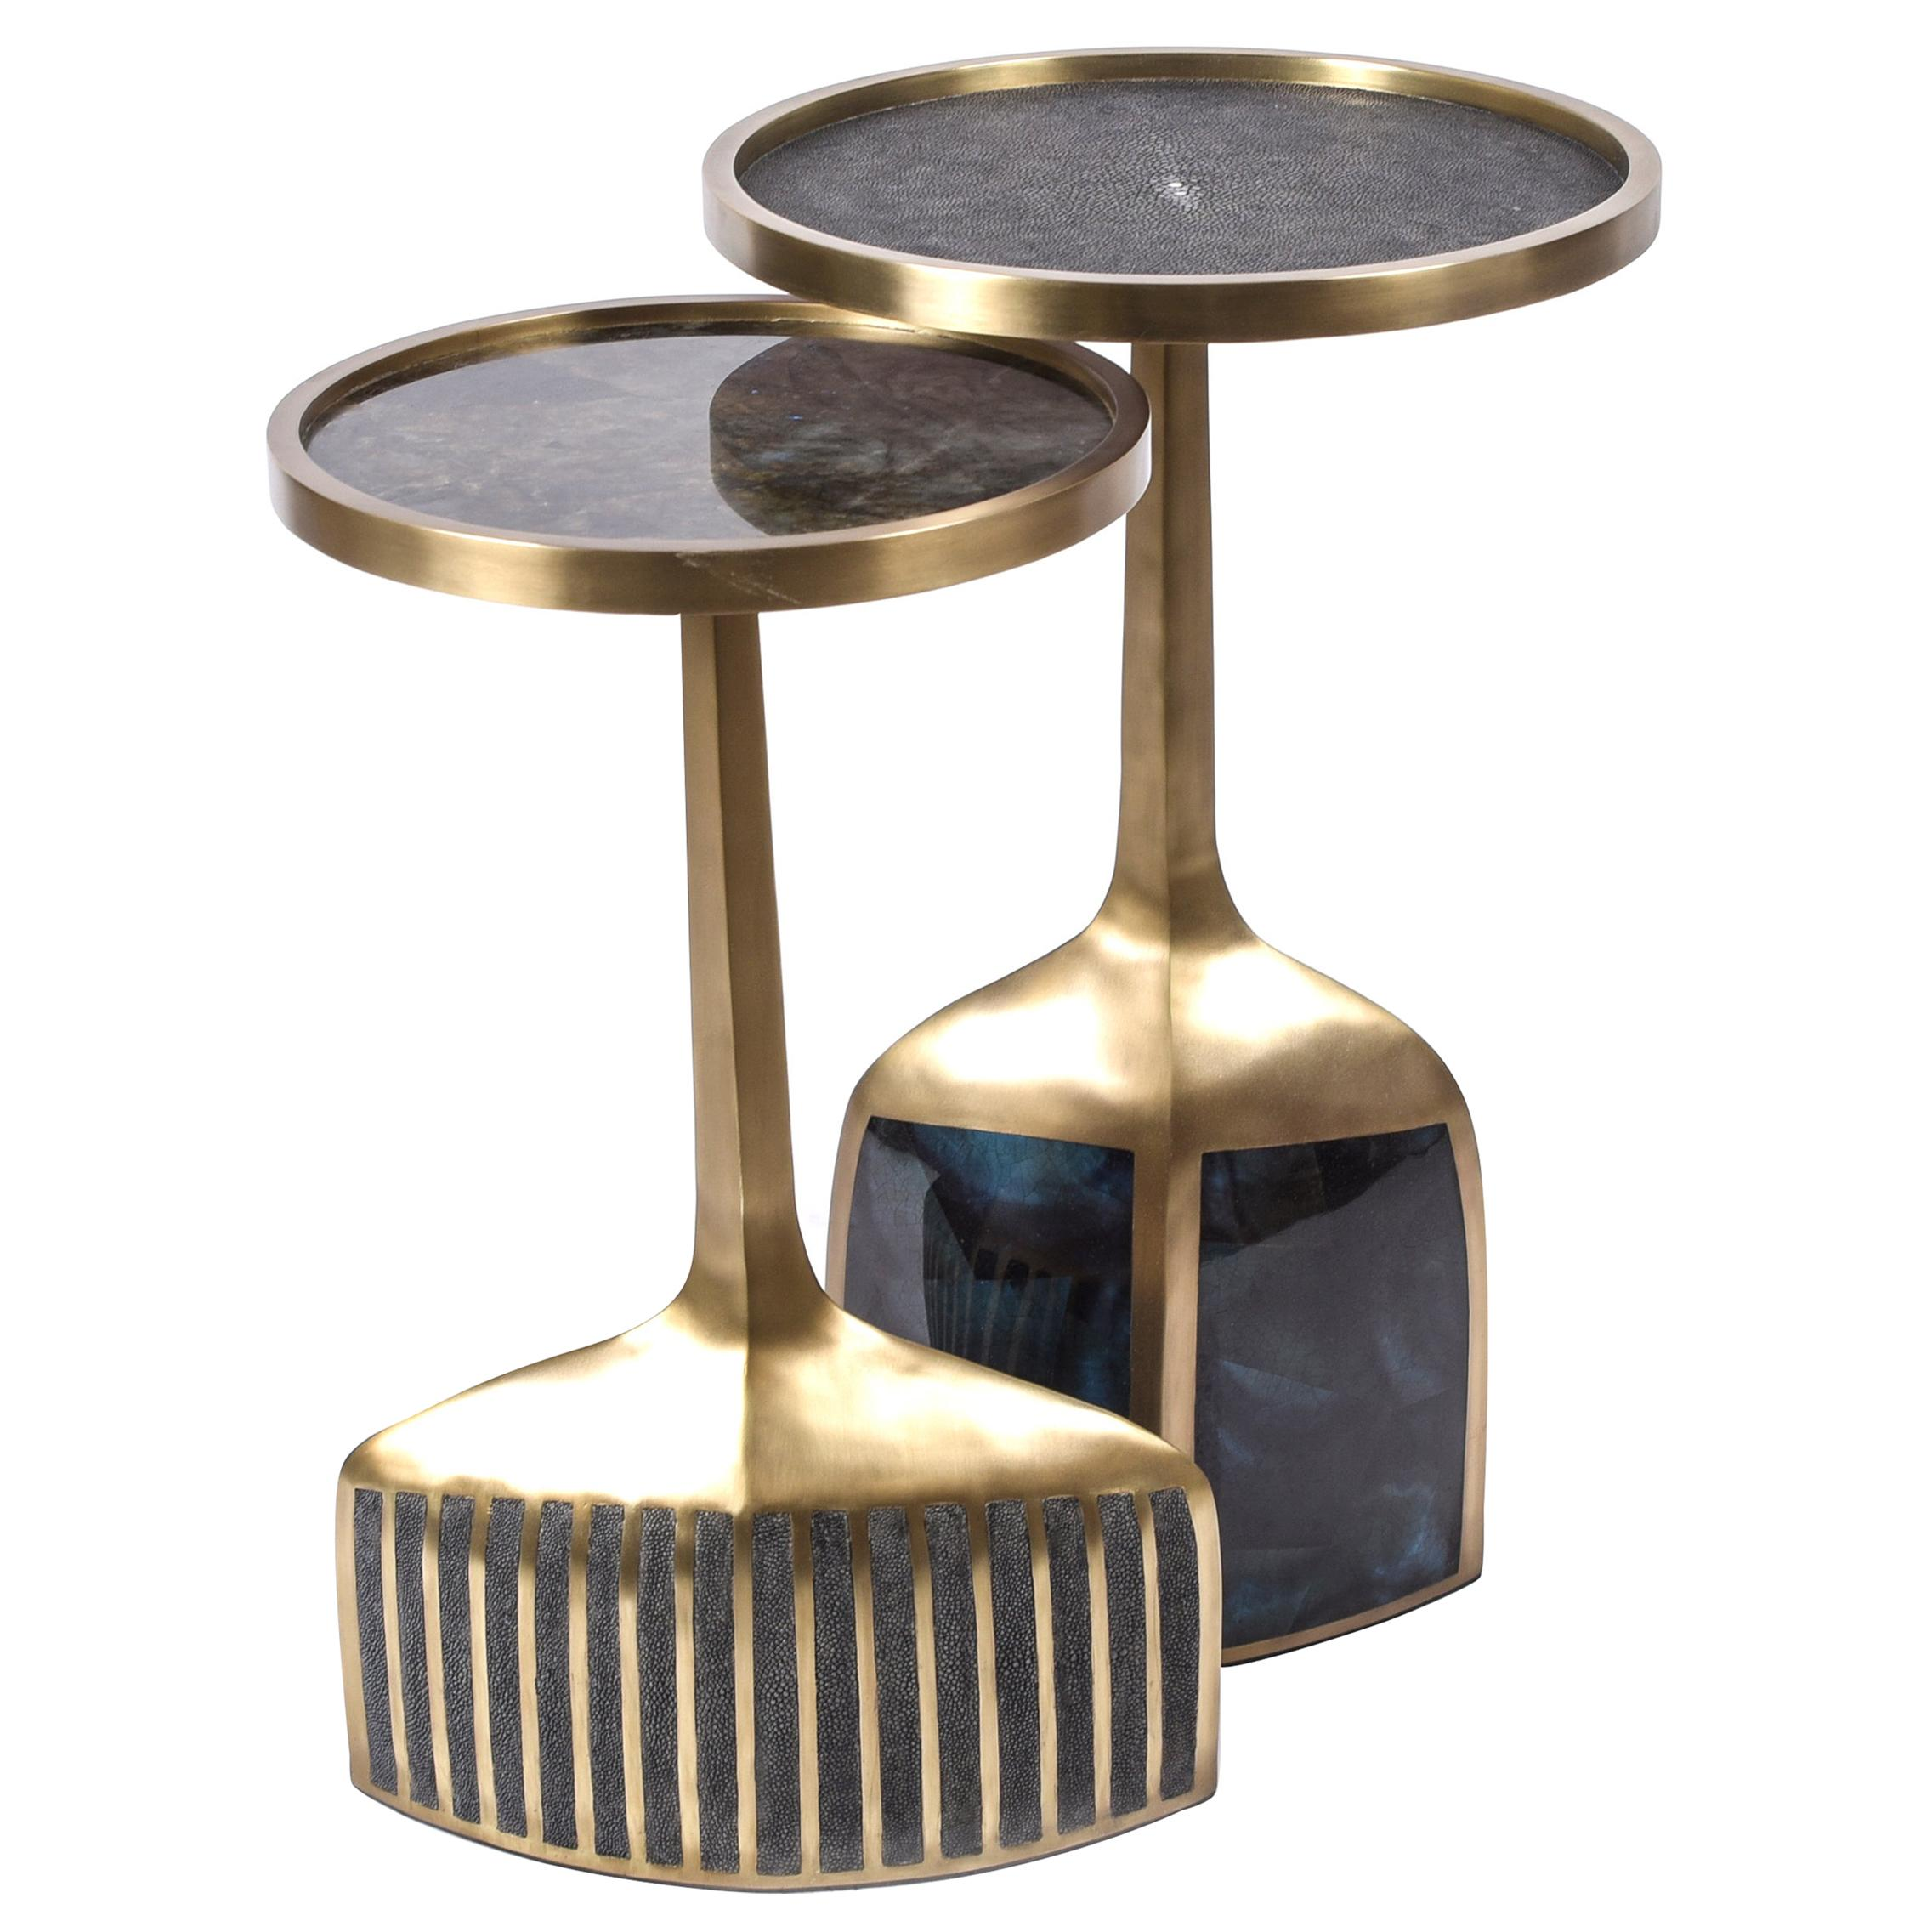 Set of 2 Pedestal Tables in Shagreen, Shell, Lemurian and Brass by R&Y Augousti